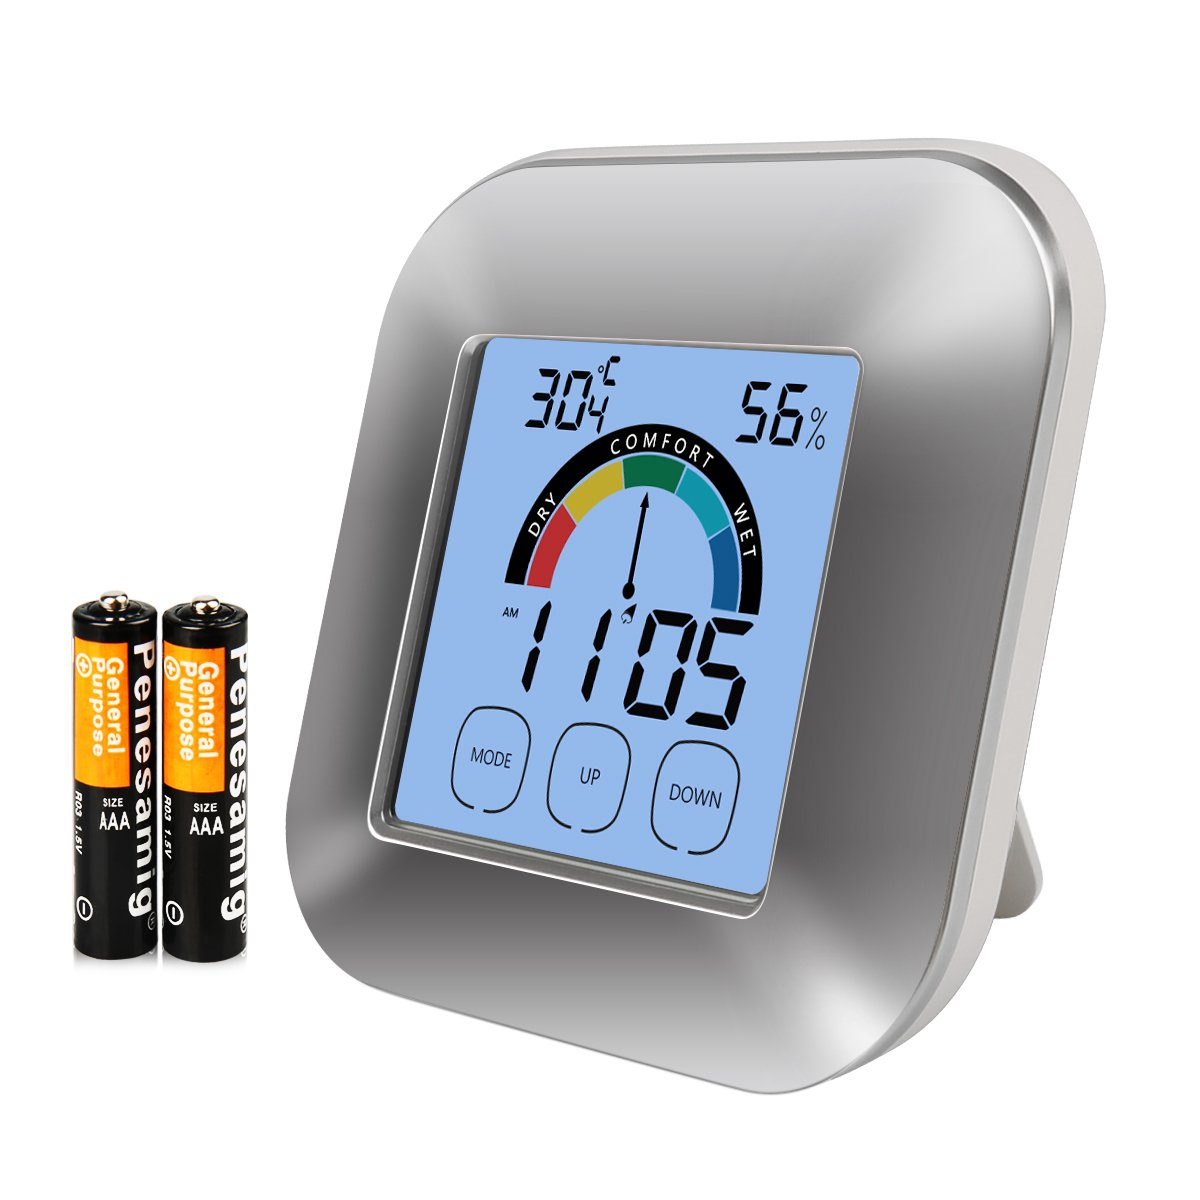 Digital Hygrometer Monitor Indoor Thermometer - Boyko Pro Accuracy Smart Humidity Temperature Gauge with Touchscreen Backlight Timer Alarm